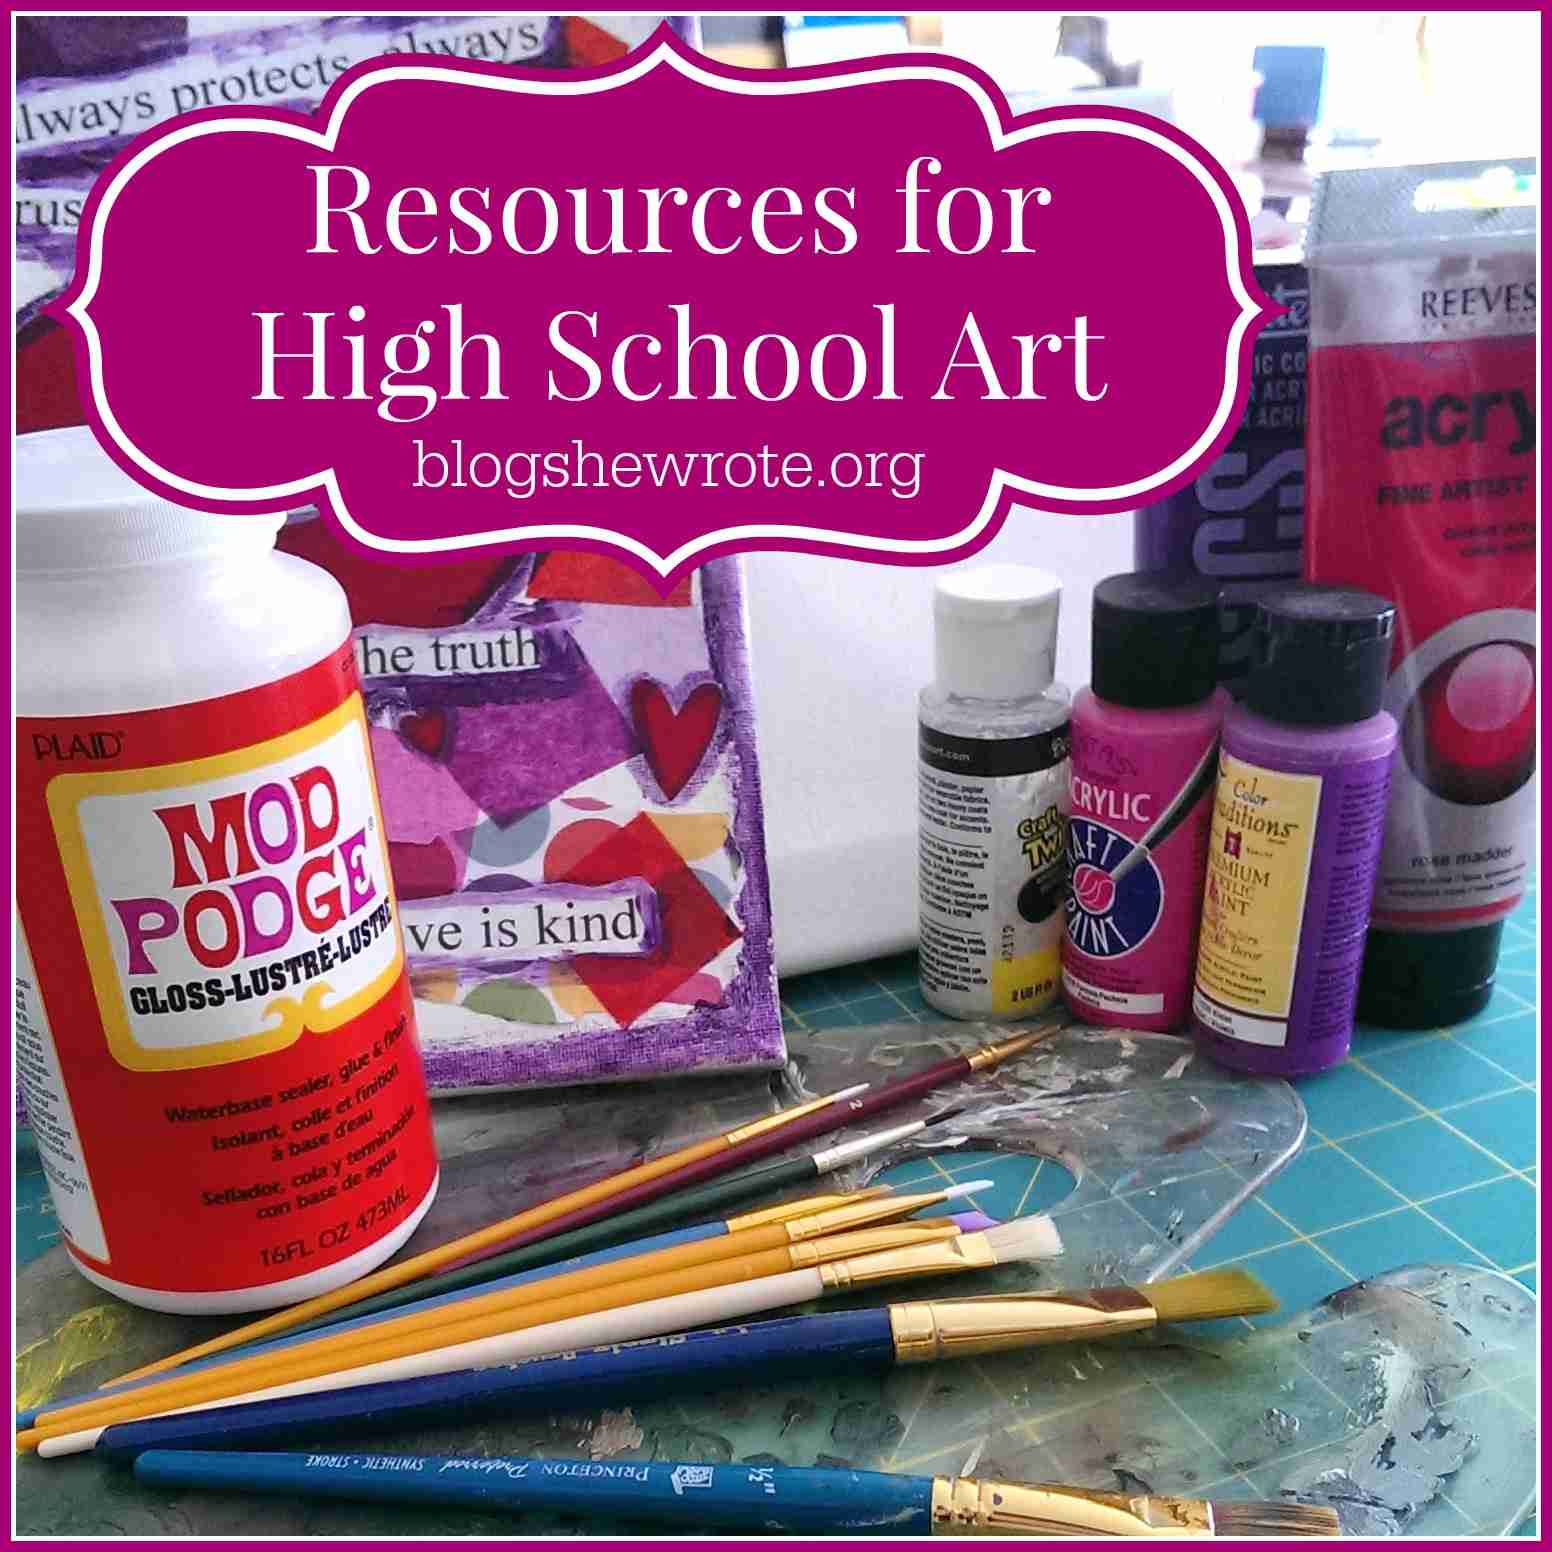 Blog, She Wrote: Resources for High School Art